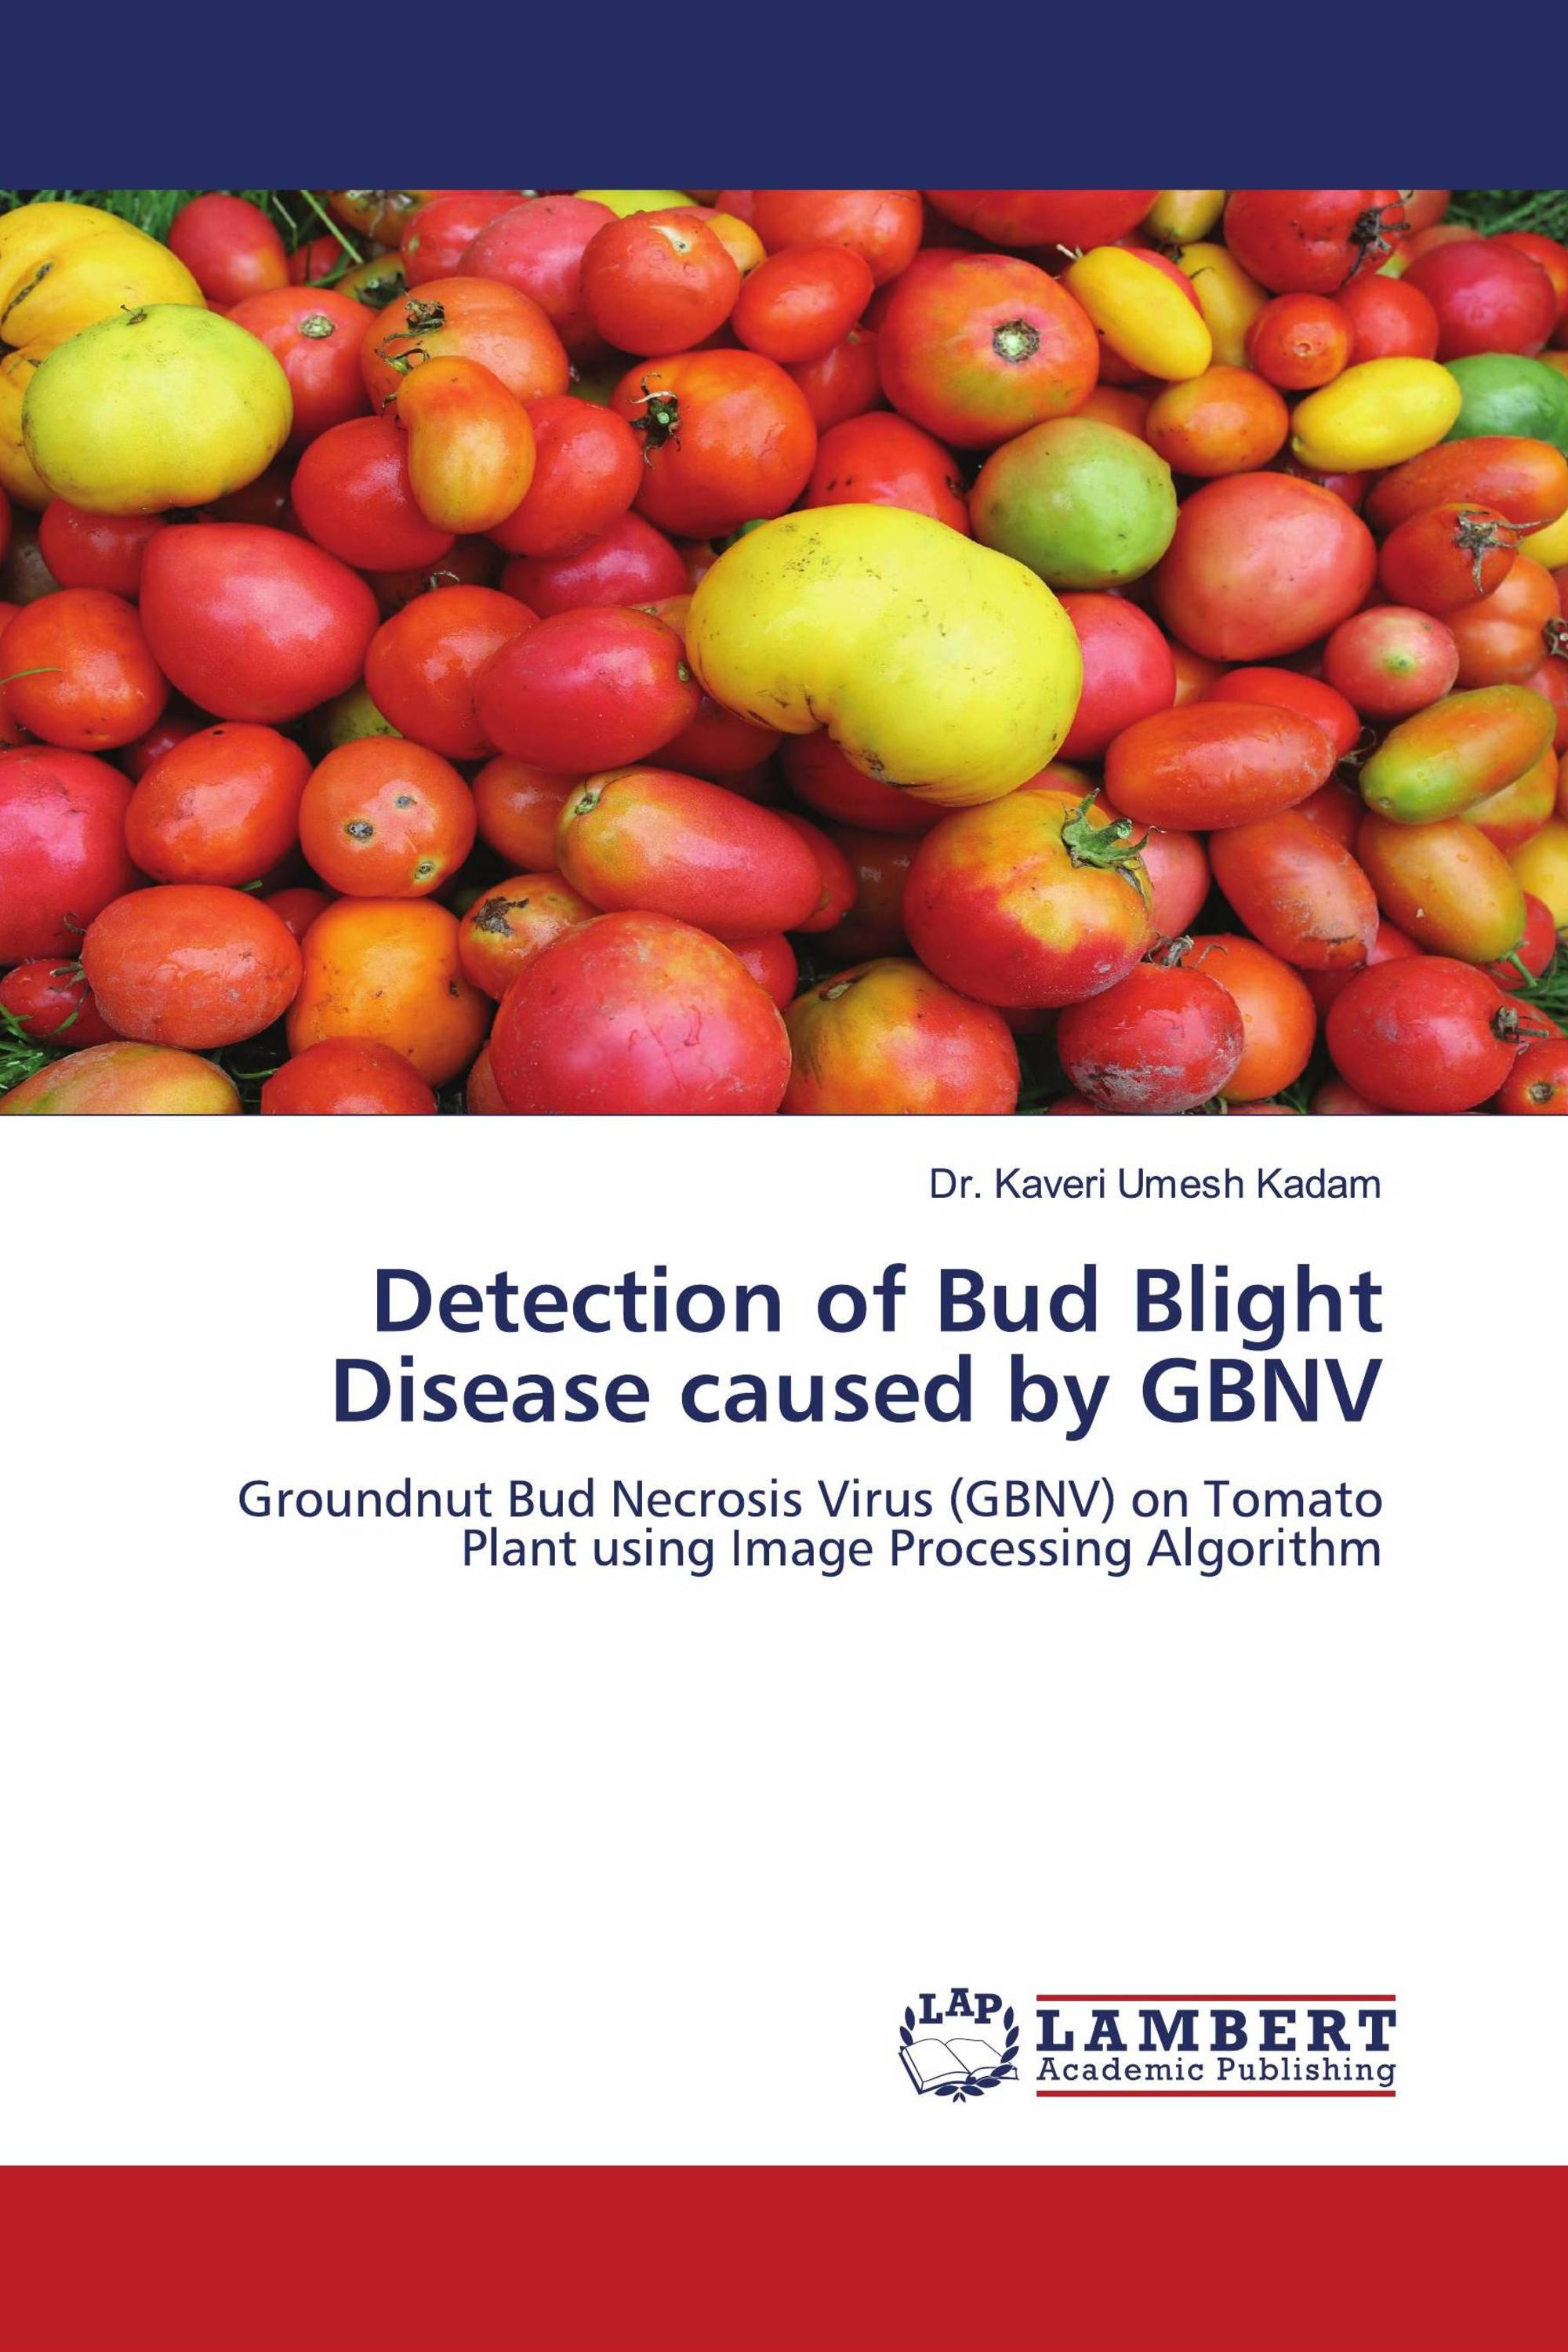 Detection of Bud Blight Disease caused by GBNV